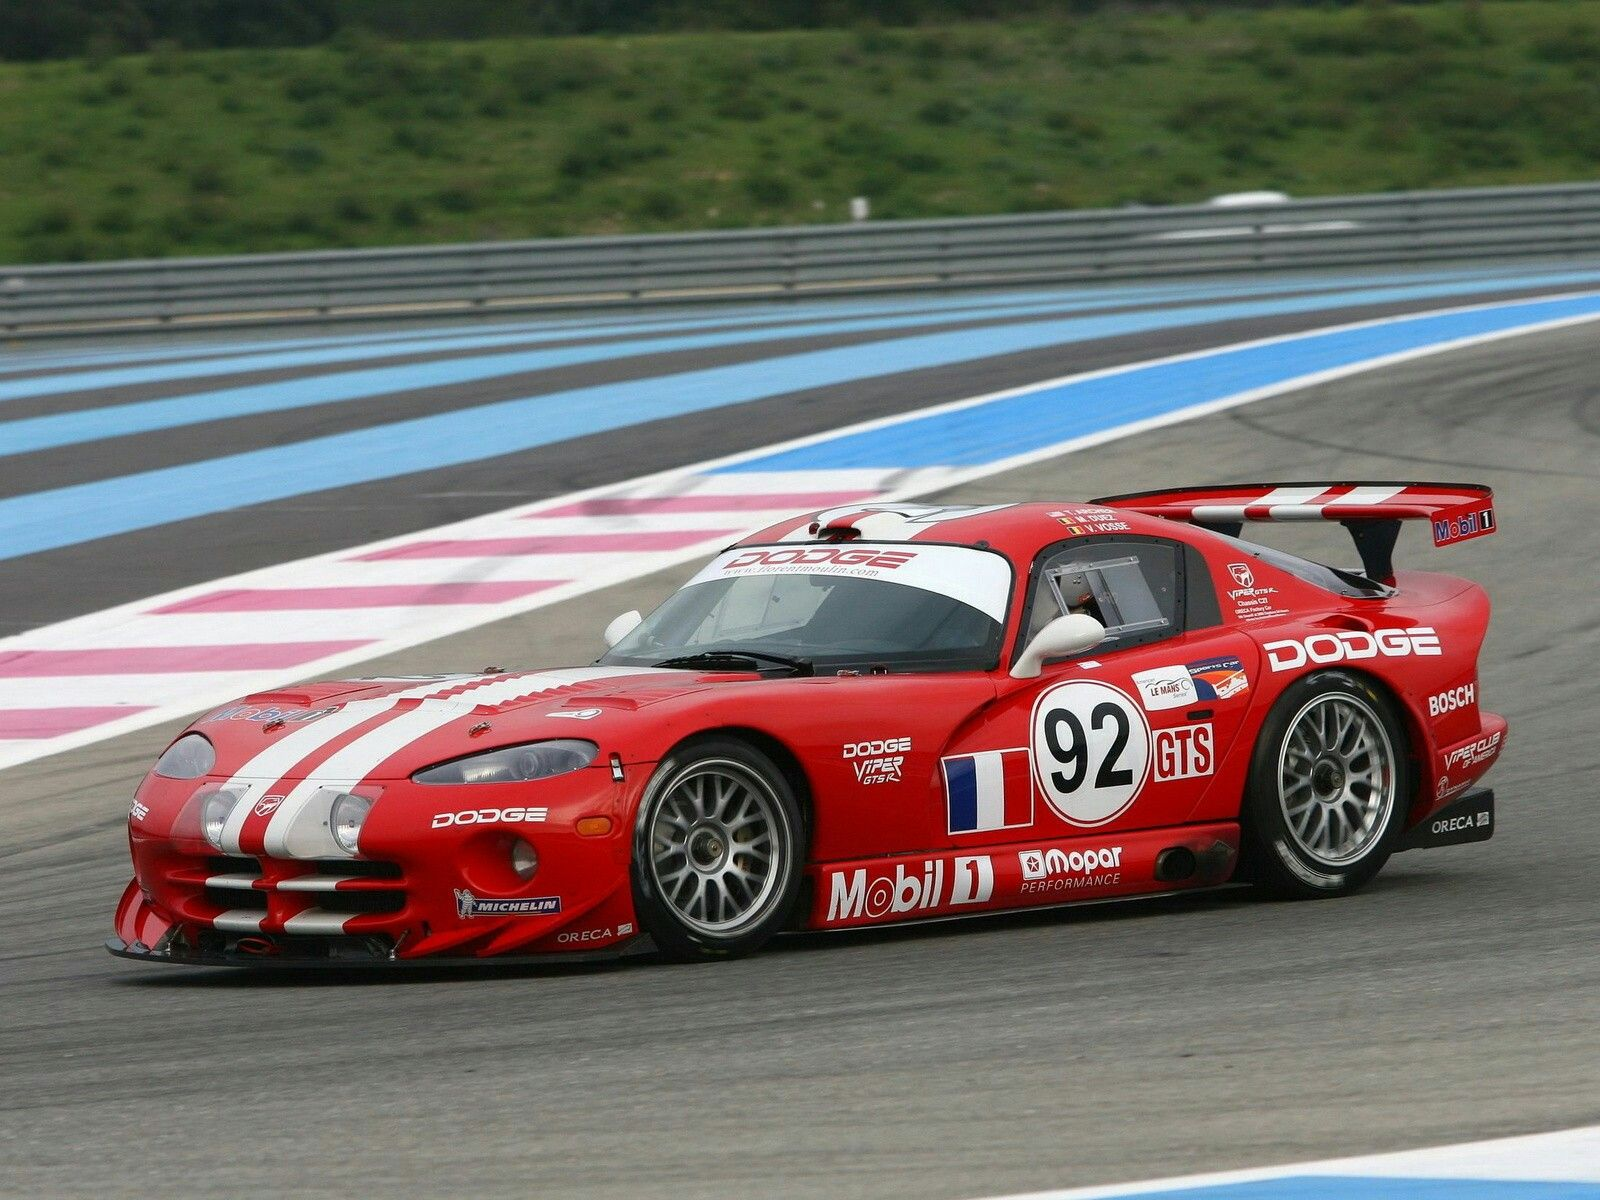 1996 Viper Gts R Dodge Viper Racing Car Design Viper Gts